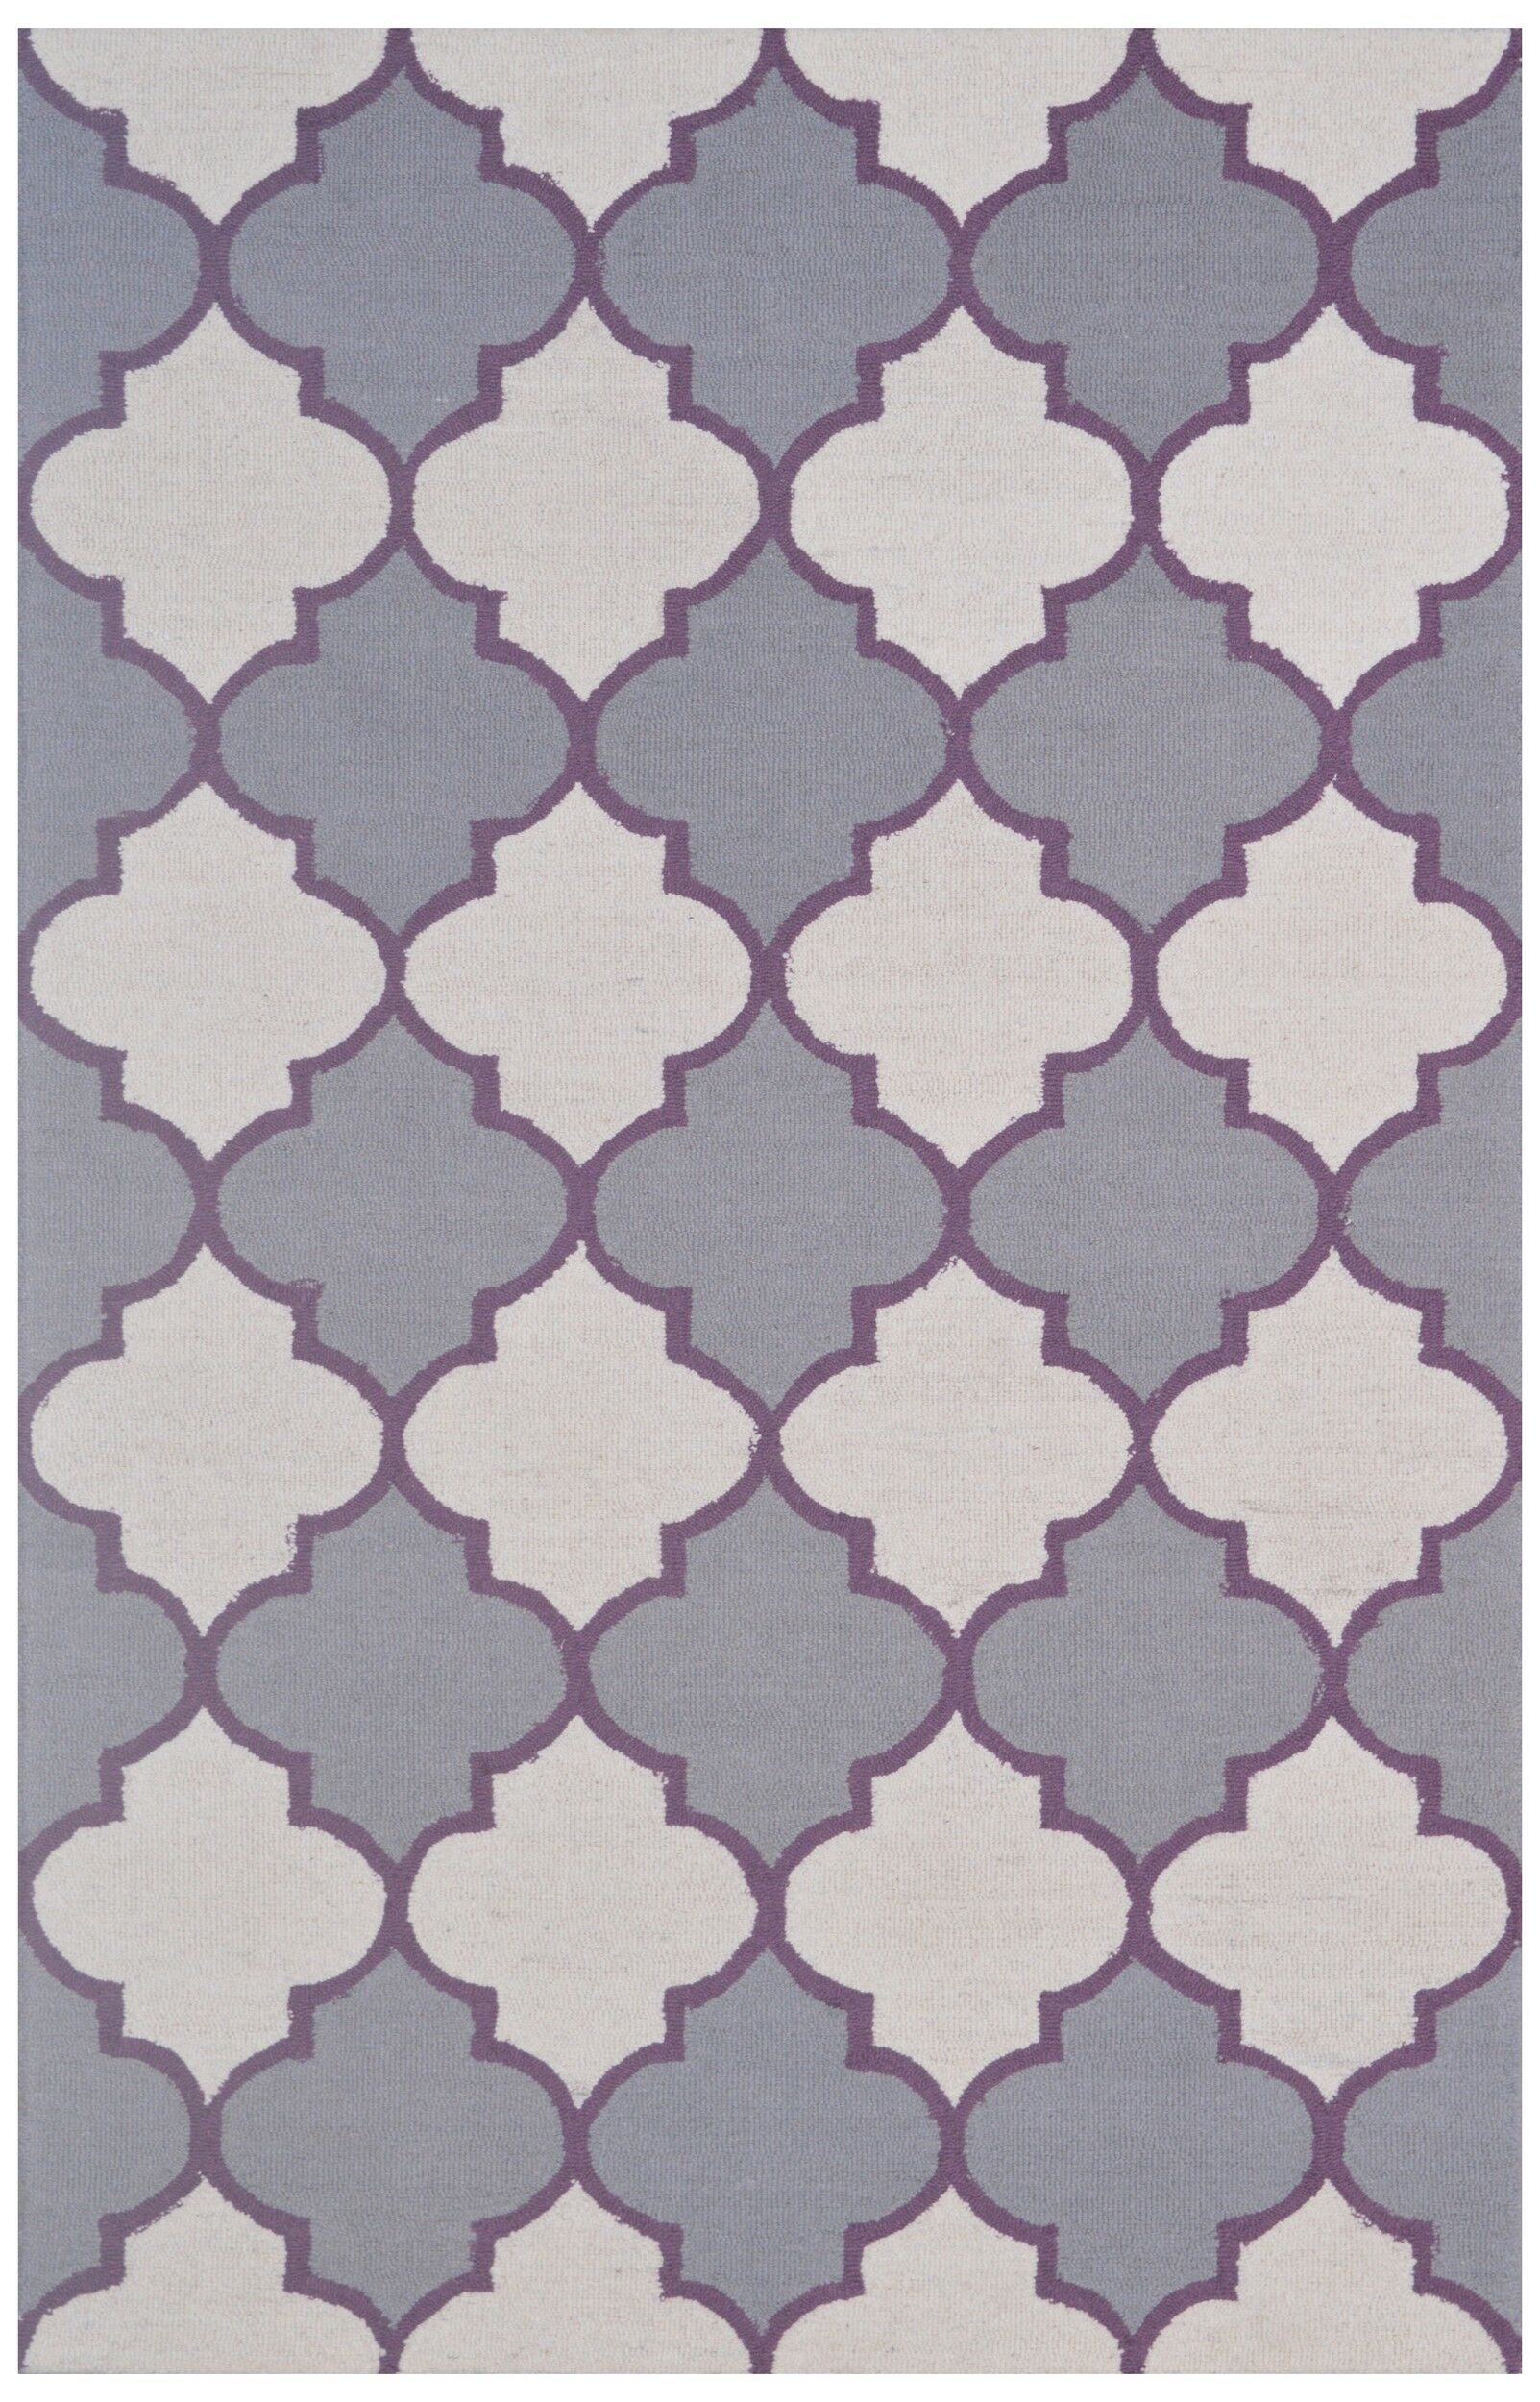 Wool Hand-Tufted Ivory/Gray Area Rug Rug Size: 5' x 8'